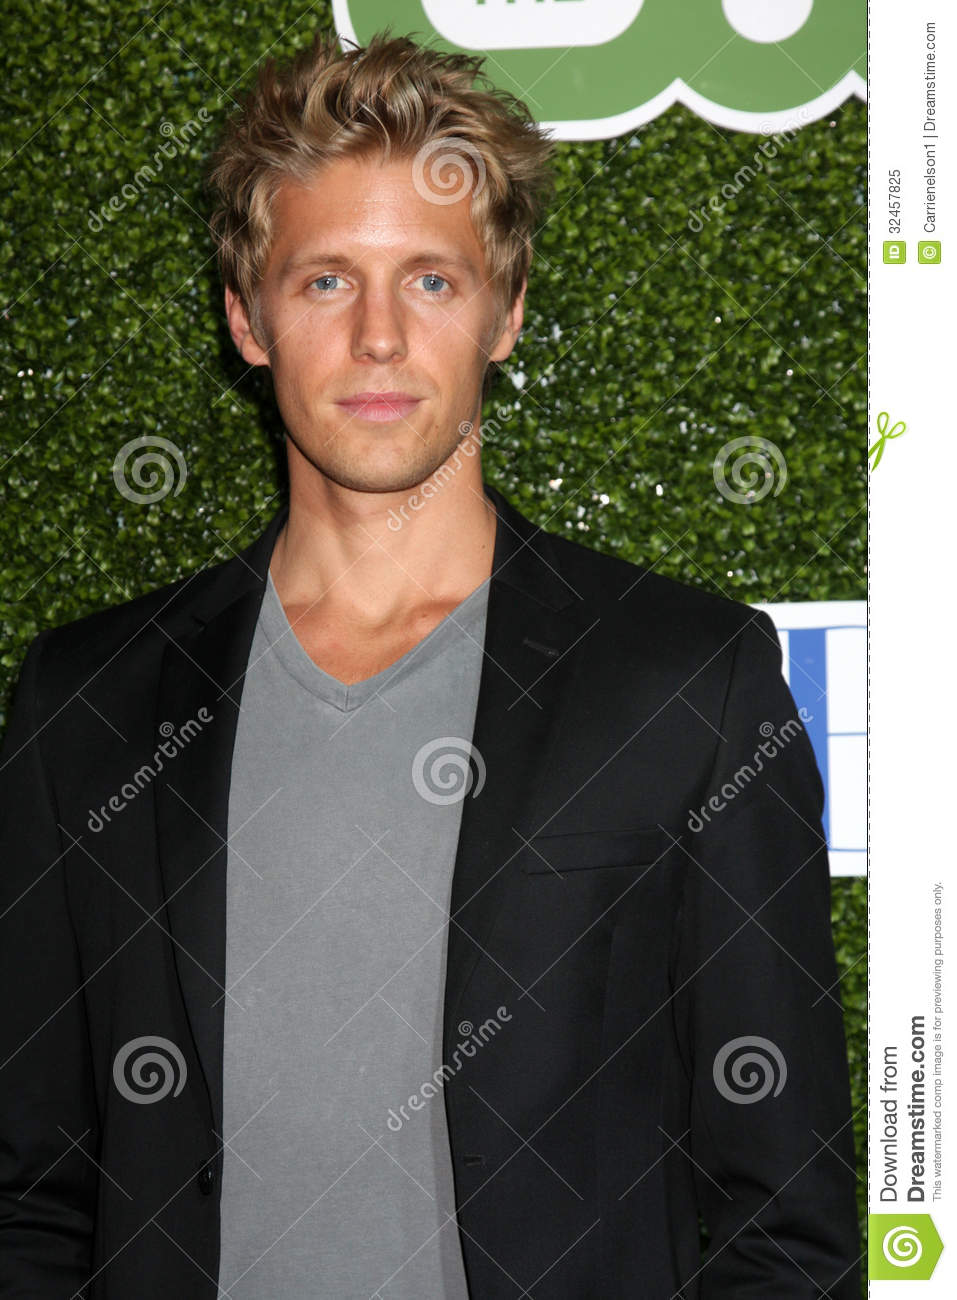 matt barr movies and tv showsmatt barr wiki, matt barr bio, matt barr net worth, matt barr instagram, matt barr facebook, matt barr big bang theory, matt barr height, matt barr sleepy hollow, matt barr girlfriend, matt barr twitter, matt barr and heather hemmens, matt barr 2015, matt barr shirtless, matt barr imdb, matt barr football, matt barr one tree hill, matt barr weil, matt barr gossip girl, matt barr dating, matt barr movies and tv shows